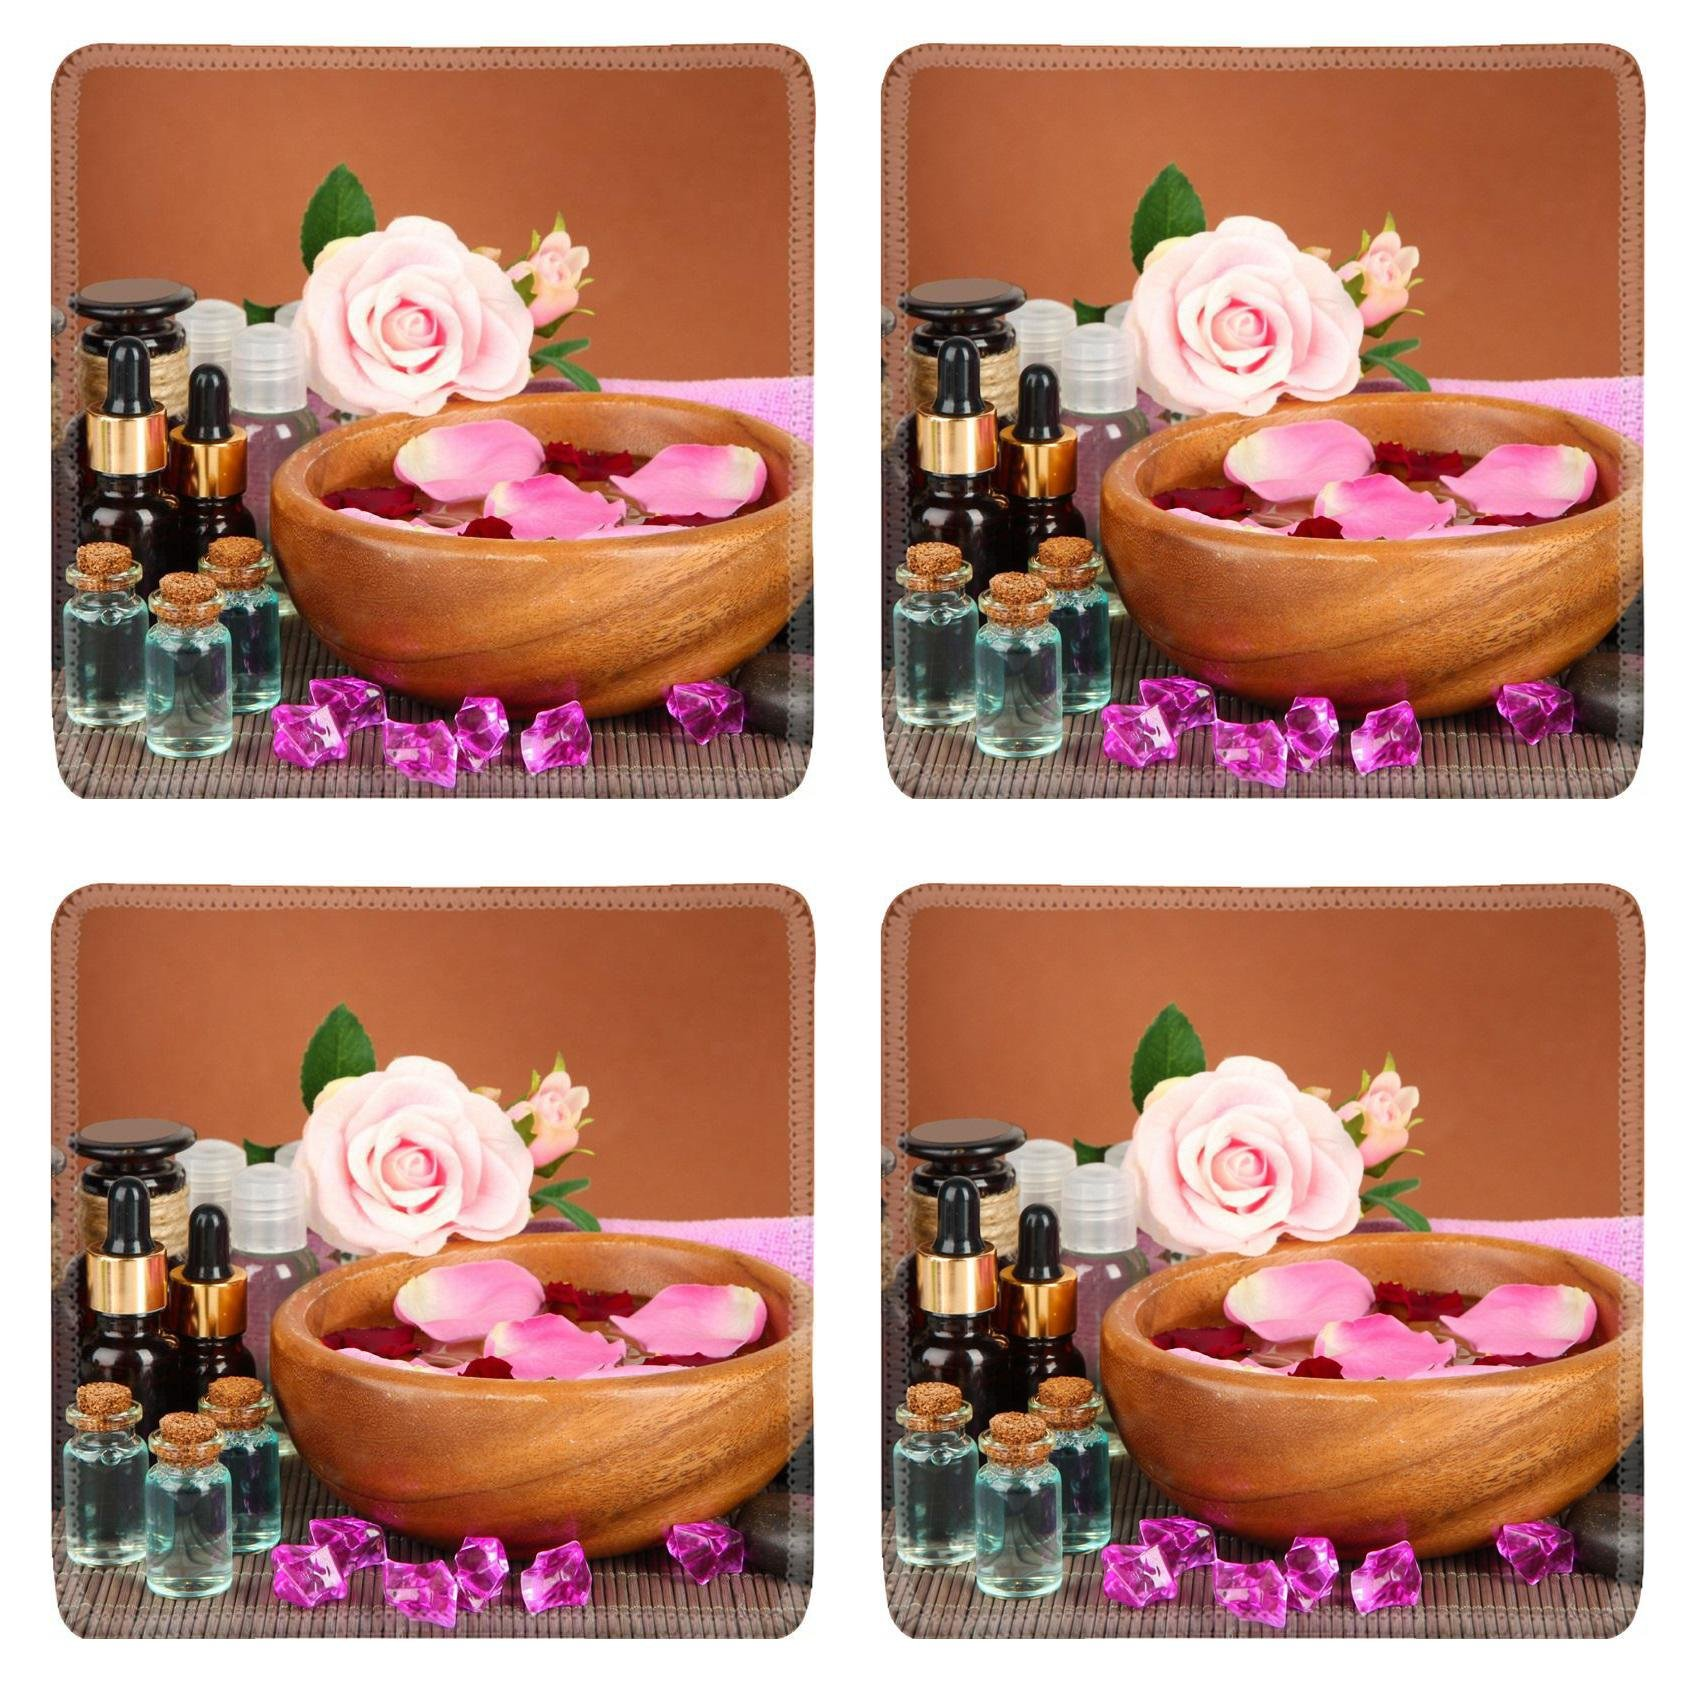 MSD Square Coasters Non-Slip Natural Rubber Desk Coasters design 19764017 Spa composition with aroma oils on brown background